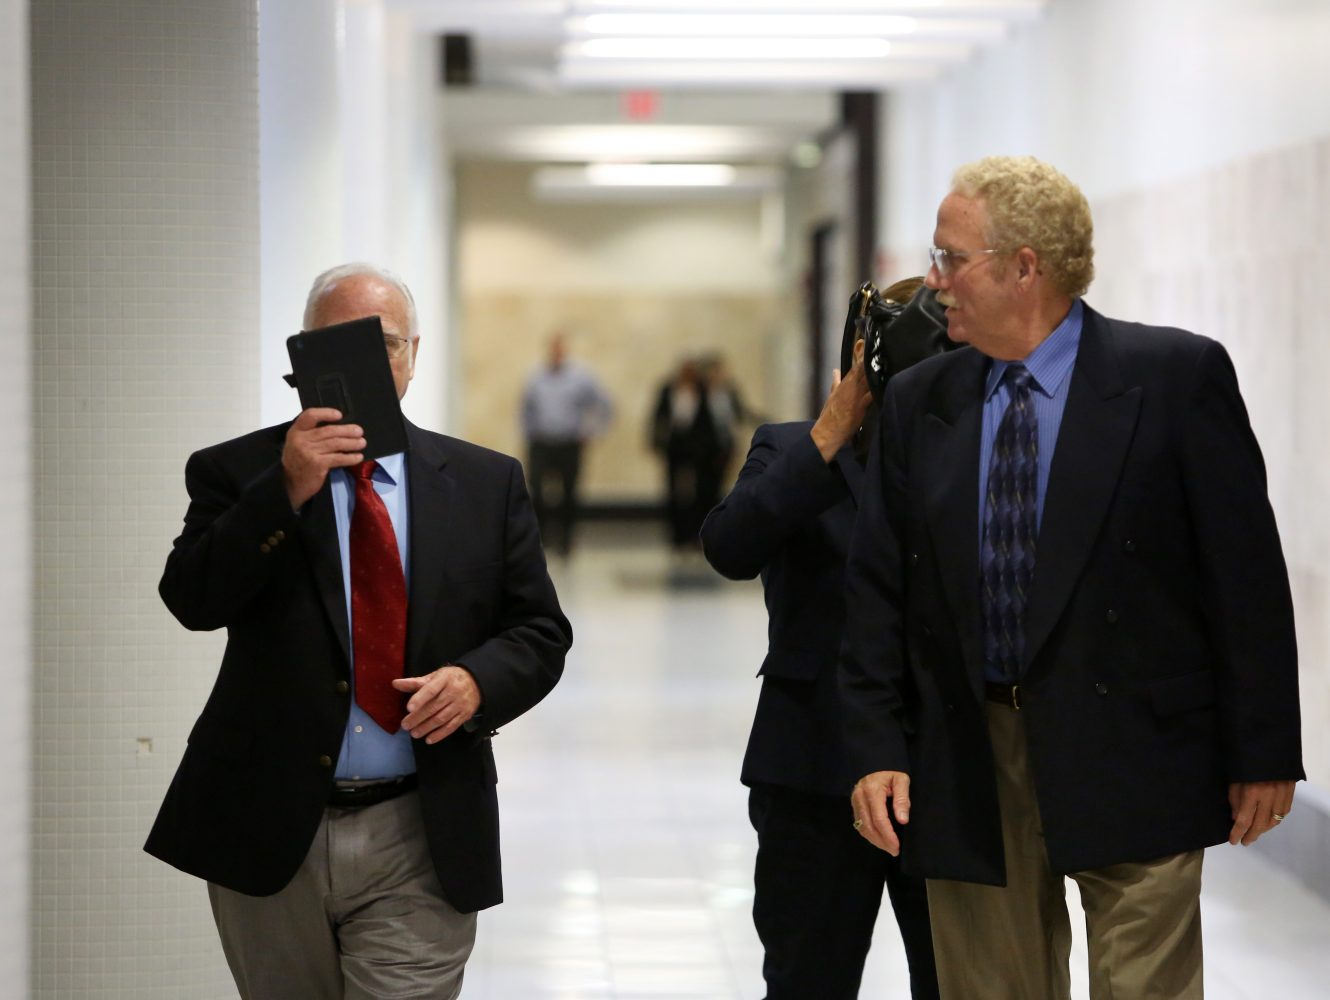 The parents of Pedro Bravo shield their faces from the camera as they walk back to the courtroom for their son's murder trial at the Alachua County Criminal Justice Center Tuesday, August 5, 2014.  Pedro is accused of killing friend and University of Florida student Christian Aguilar.  (Doug Finger/The Gainesville Sun/Pool)